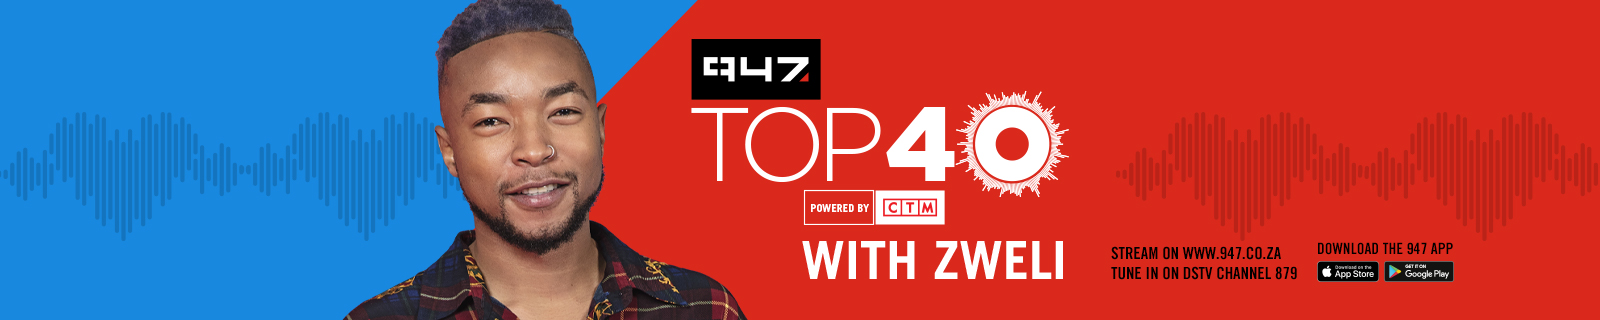 947top40ctm-with-zweli-website-banner1600x320jpg